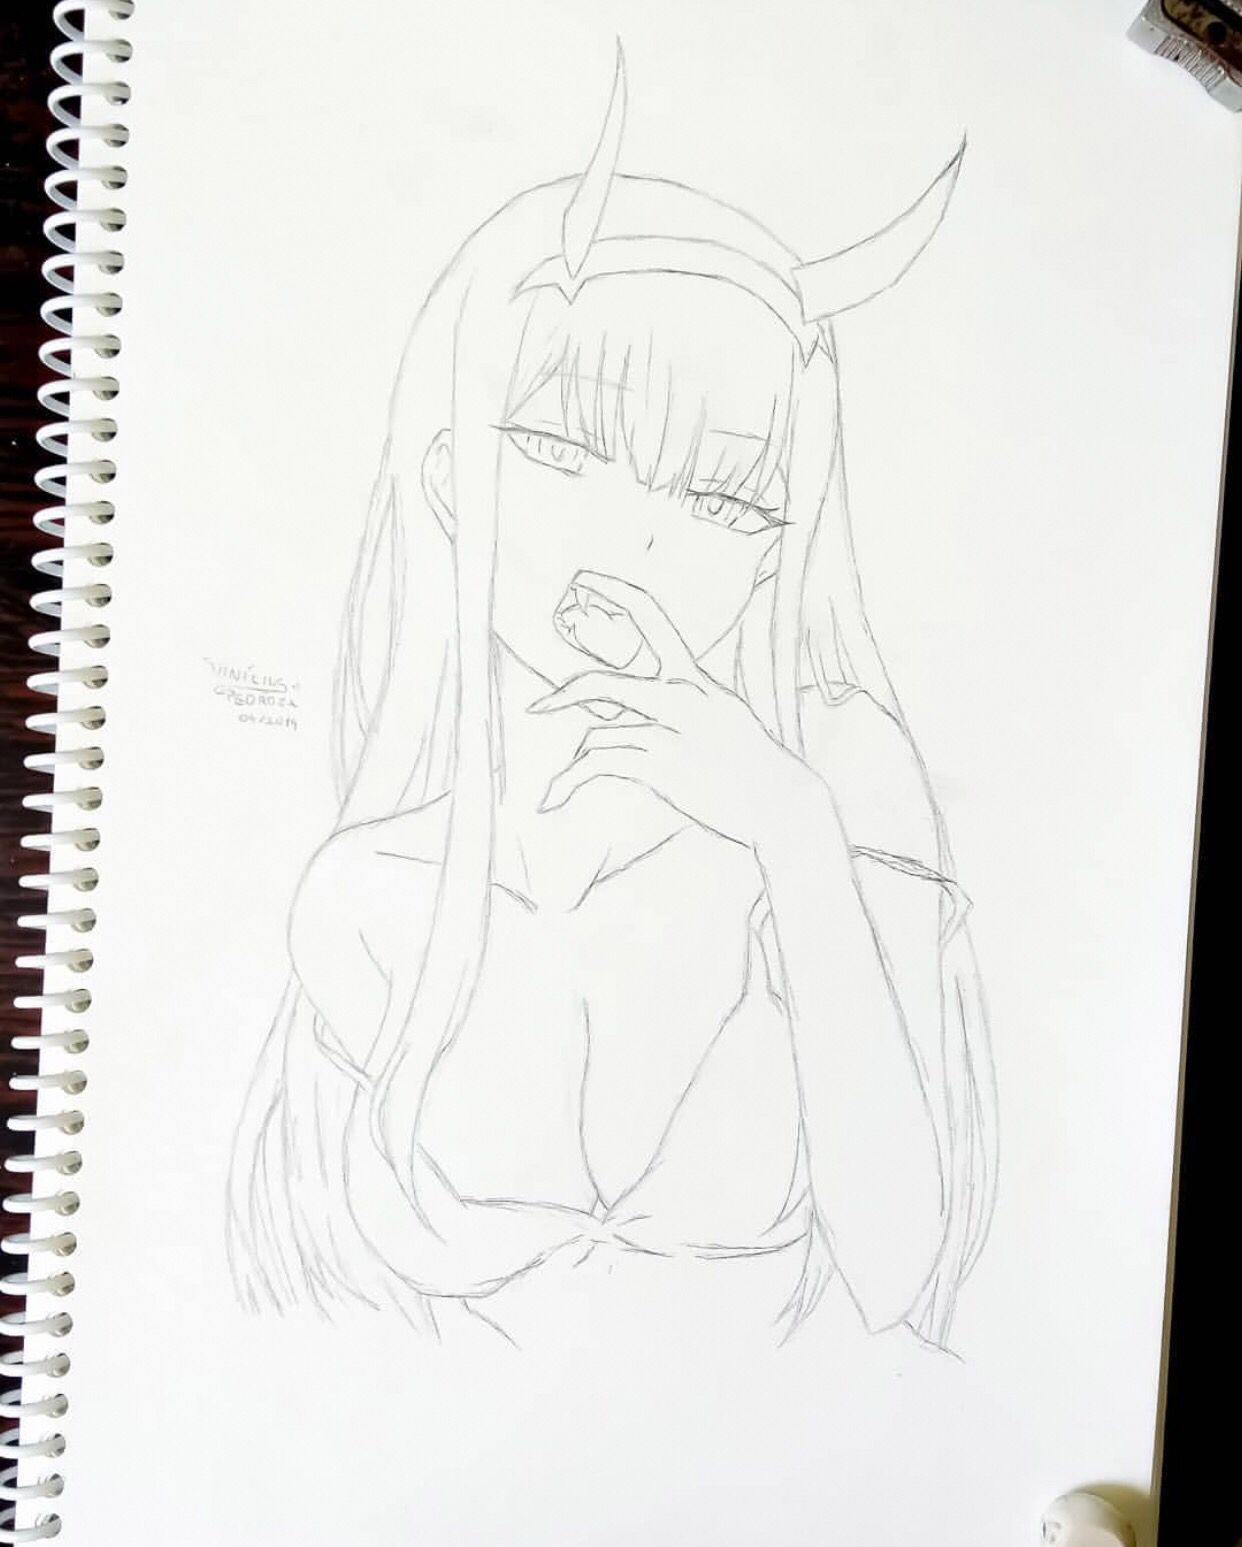 Zerotwo By Vinipedroza San Visit Our Website For More Anime And Animeart Anime Drawings Boy Naruto Sketch Drawing Anime Drawings Sketches